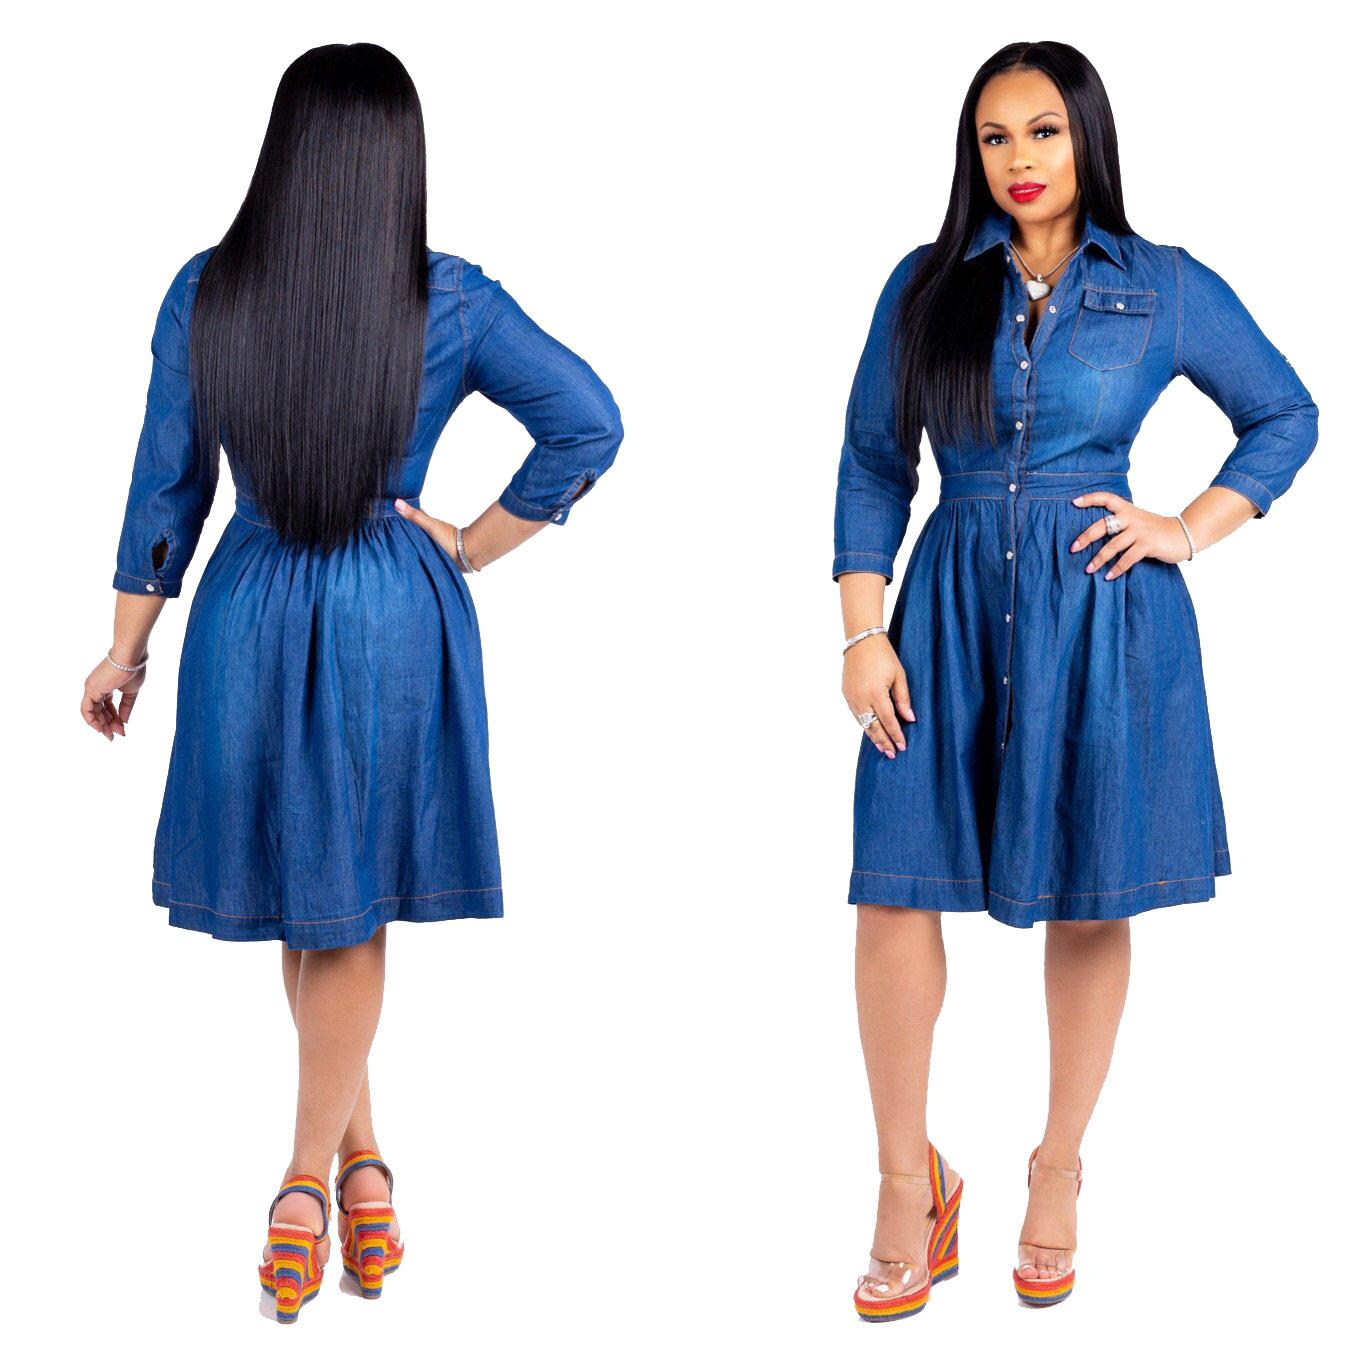 S-3XL Plus Size Women Jeans Dress Turn Down Collar Pockets Long Sleeve  Flare Casual Vintage Midi Denim Dress Vestidos